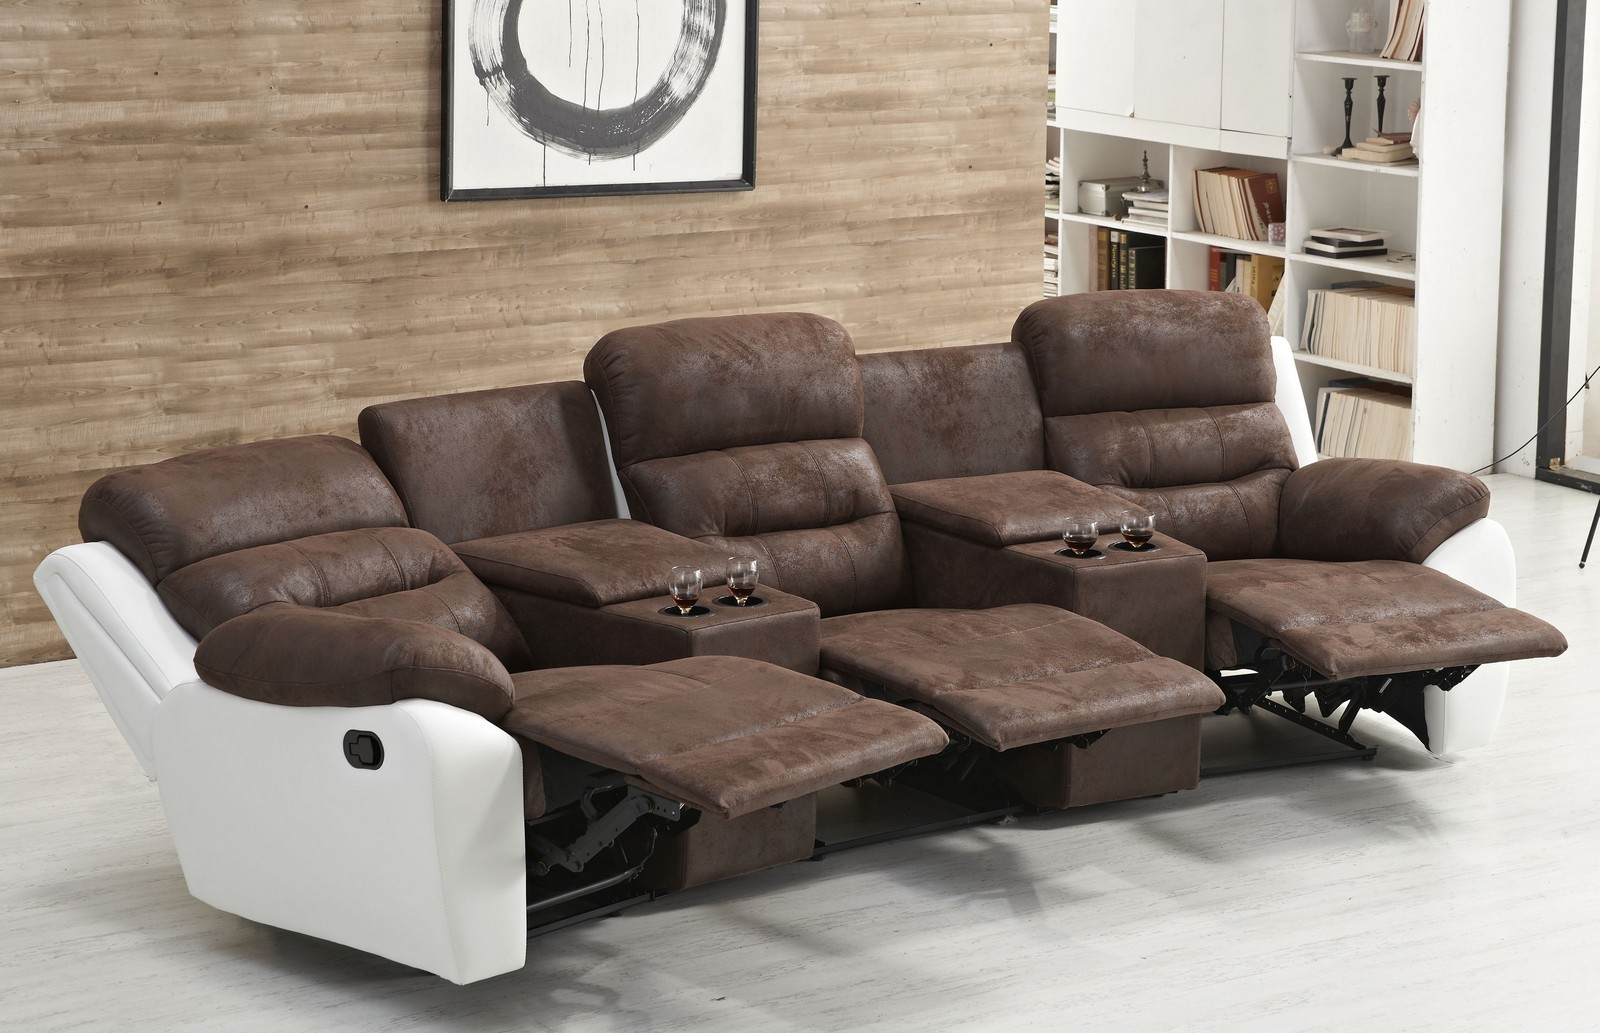 3 er kino sofa mikrofaser in braun wei mapo m bel. Black Bedroom Furniture Sets. Home Design Ideas